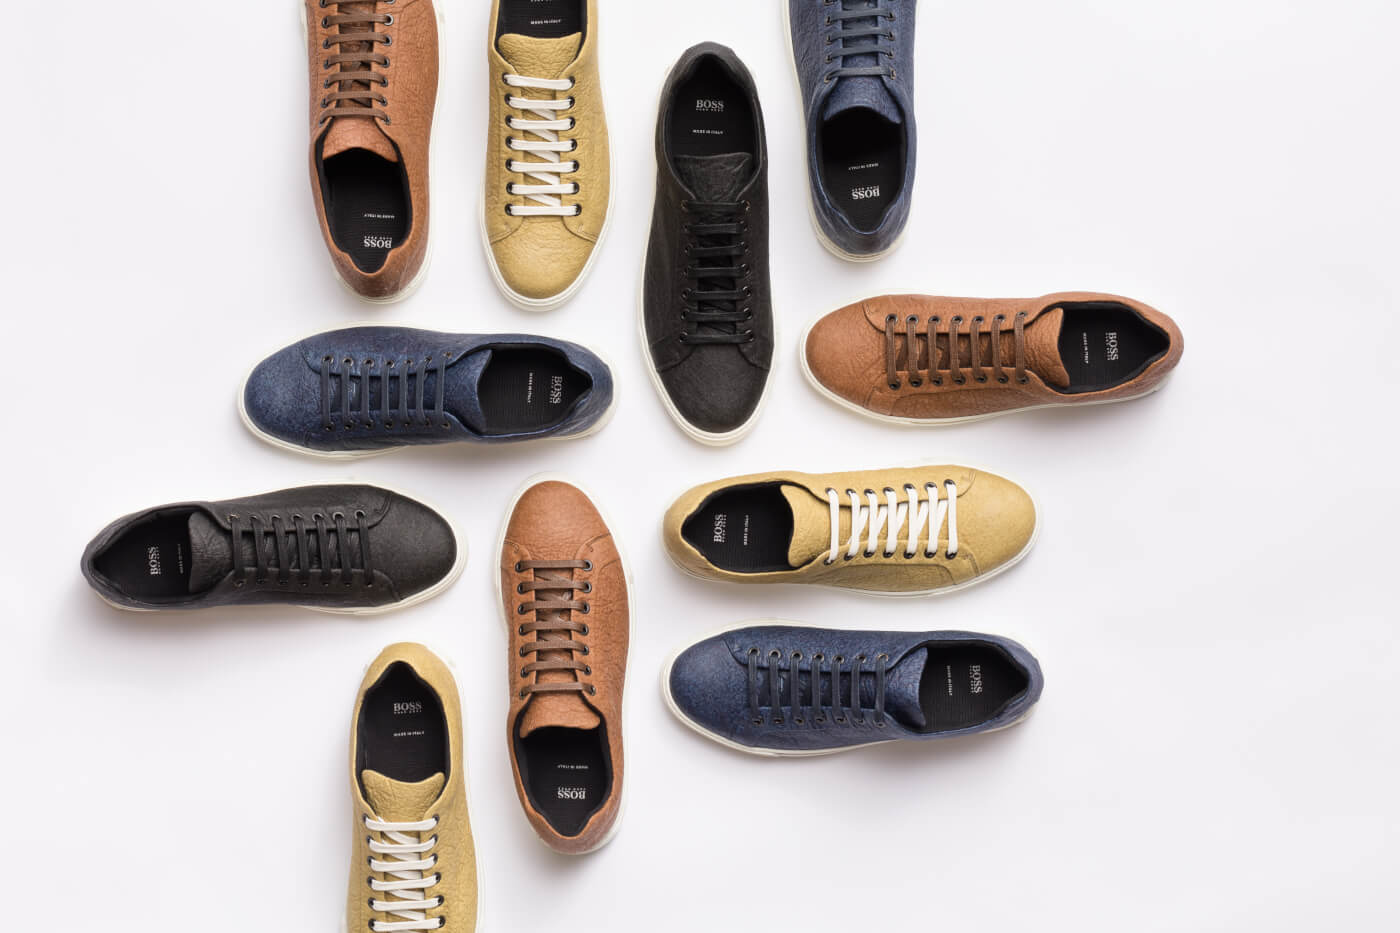 hugo boss pineapple leather shoes